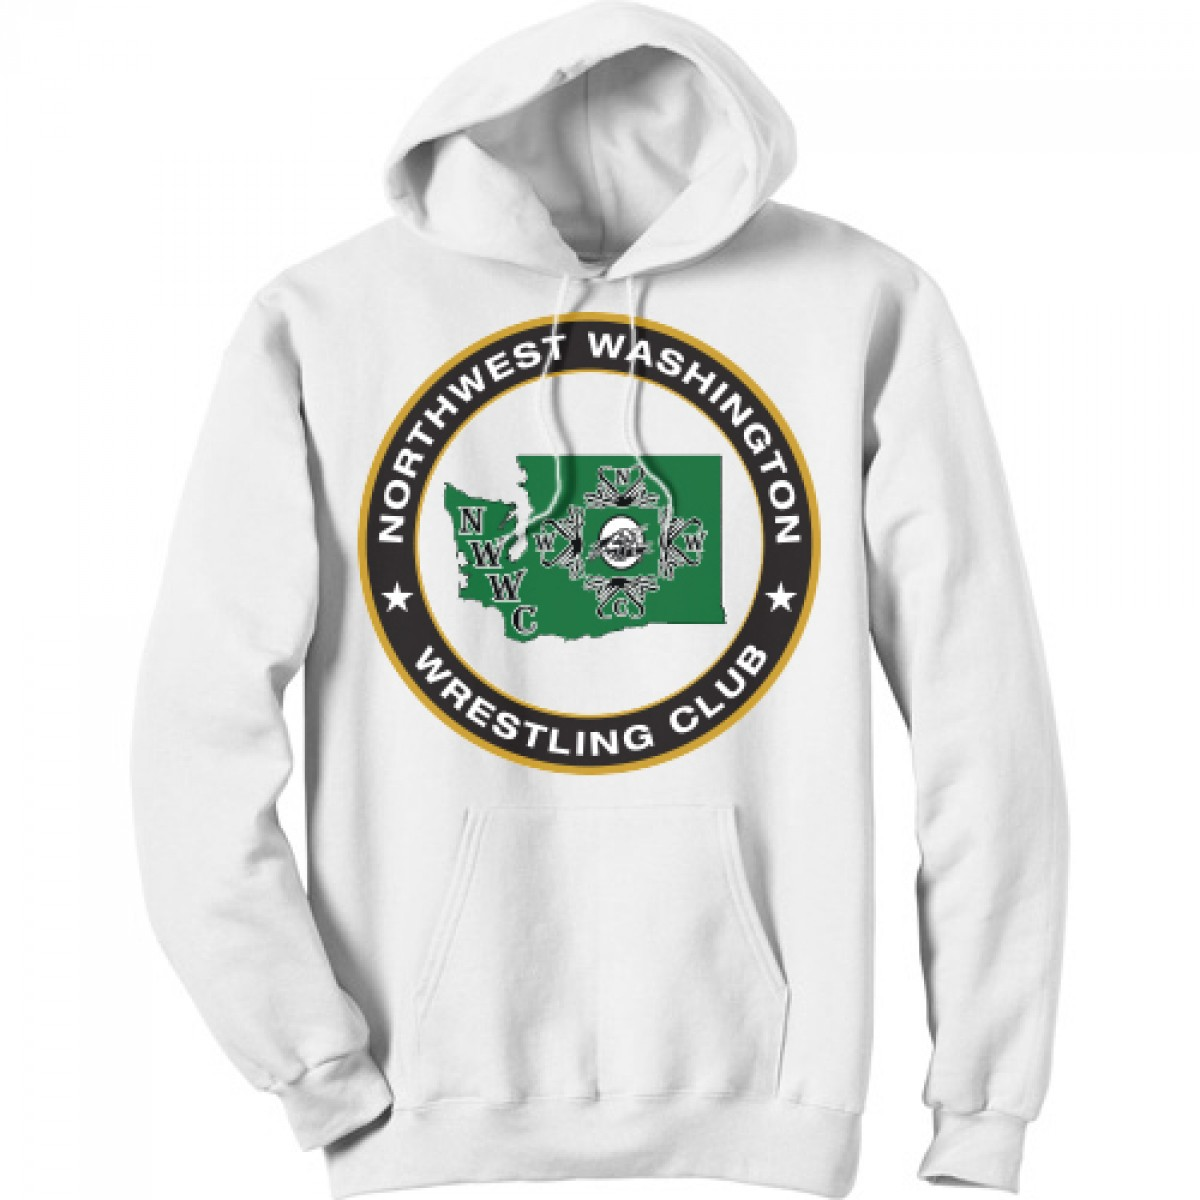 NWWC White Hoodie With Green Logo-White-S